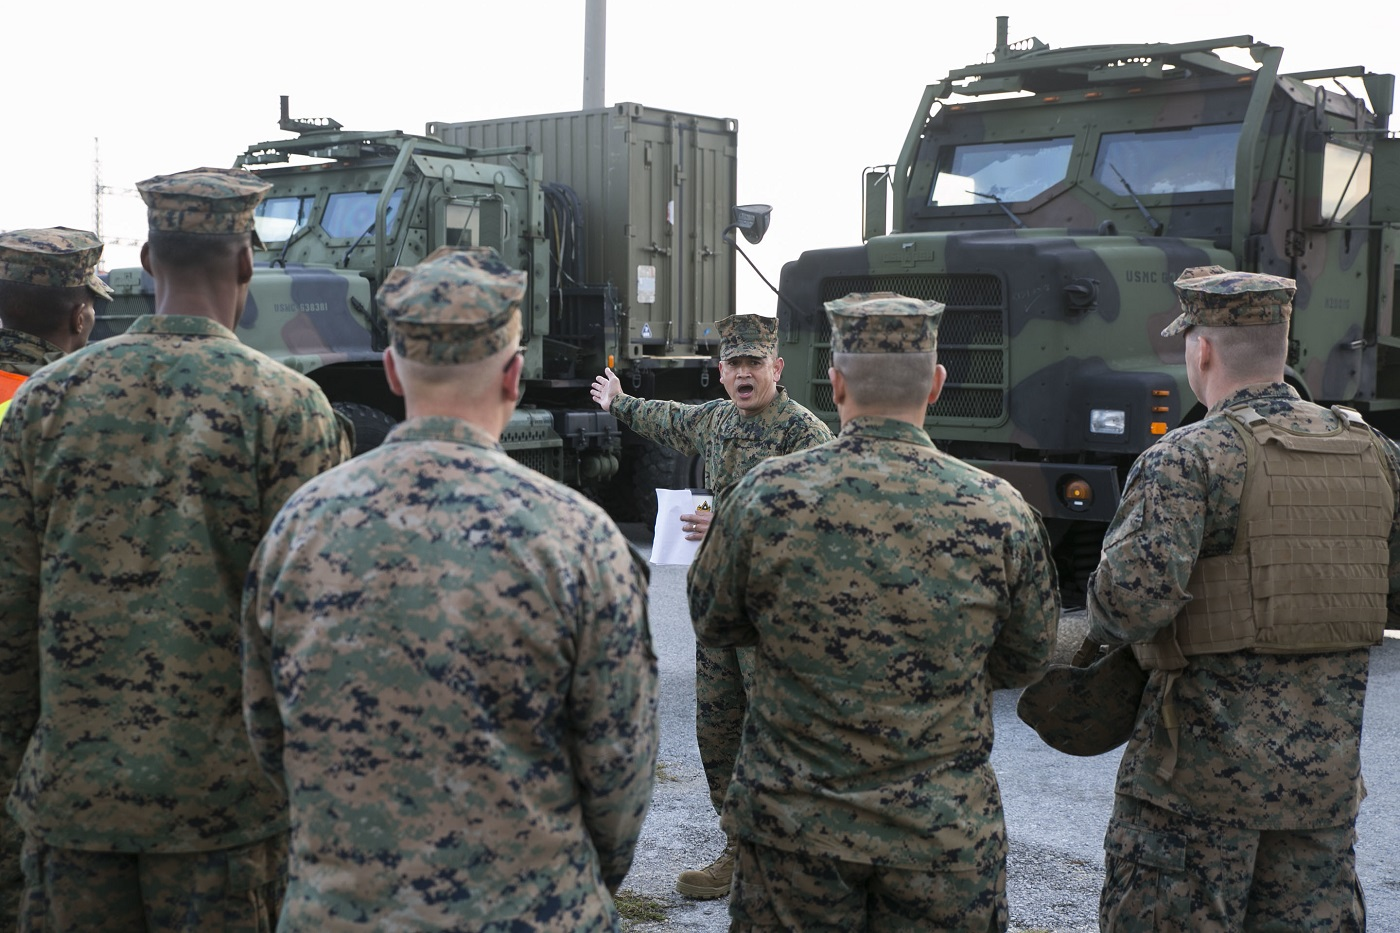 Rodeo rounds up motor t okinawa marines news article for Marine corps motor t